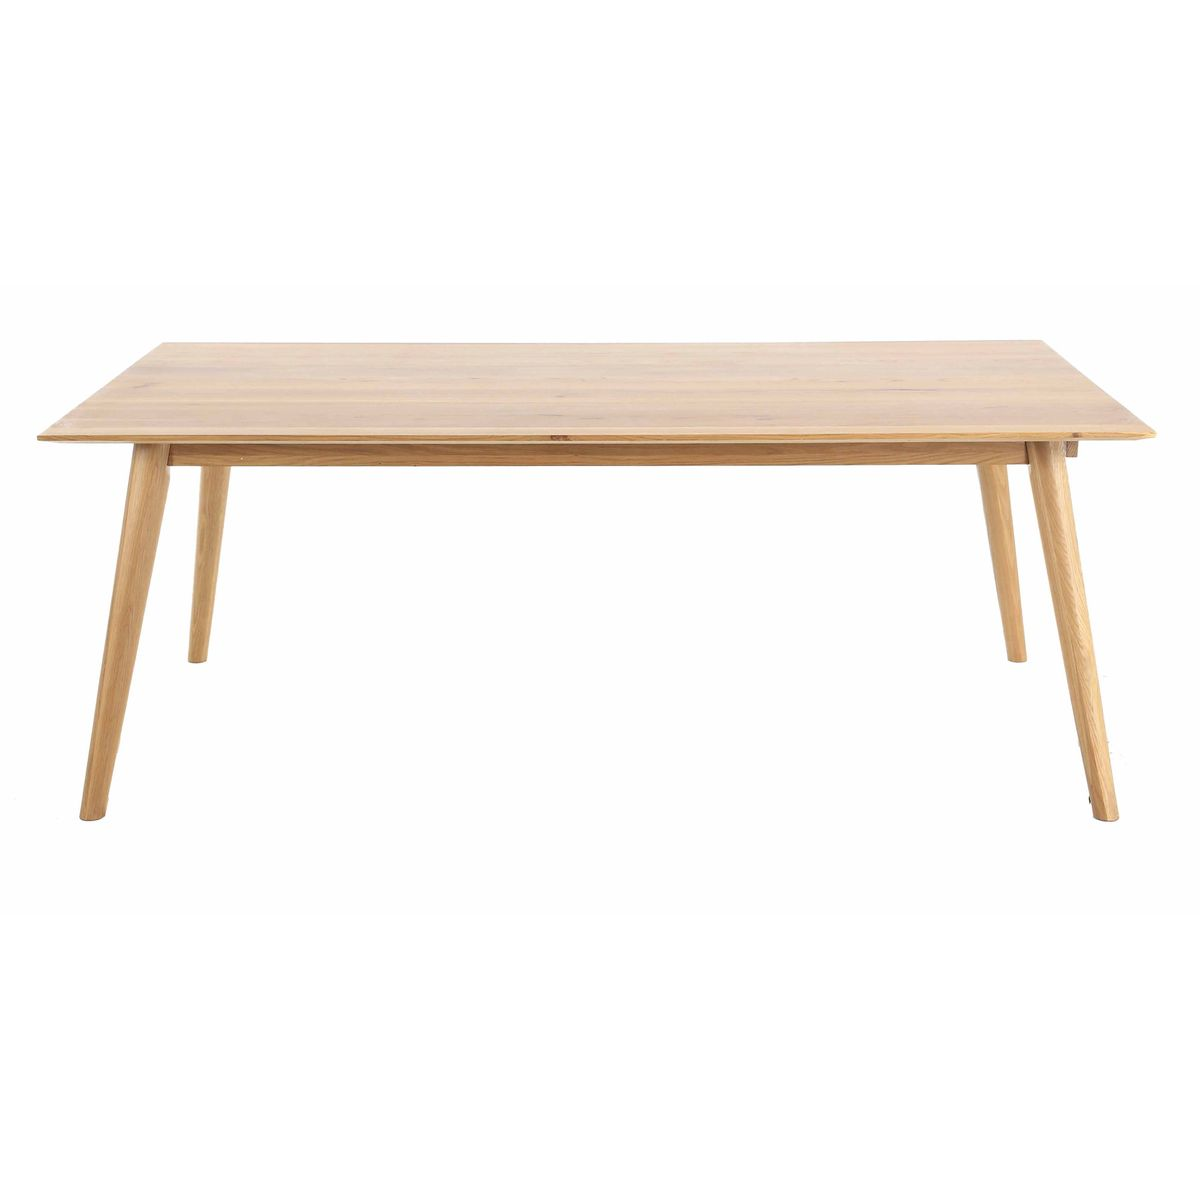 Table extensible chêne massif 180 cm allonges en option